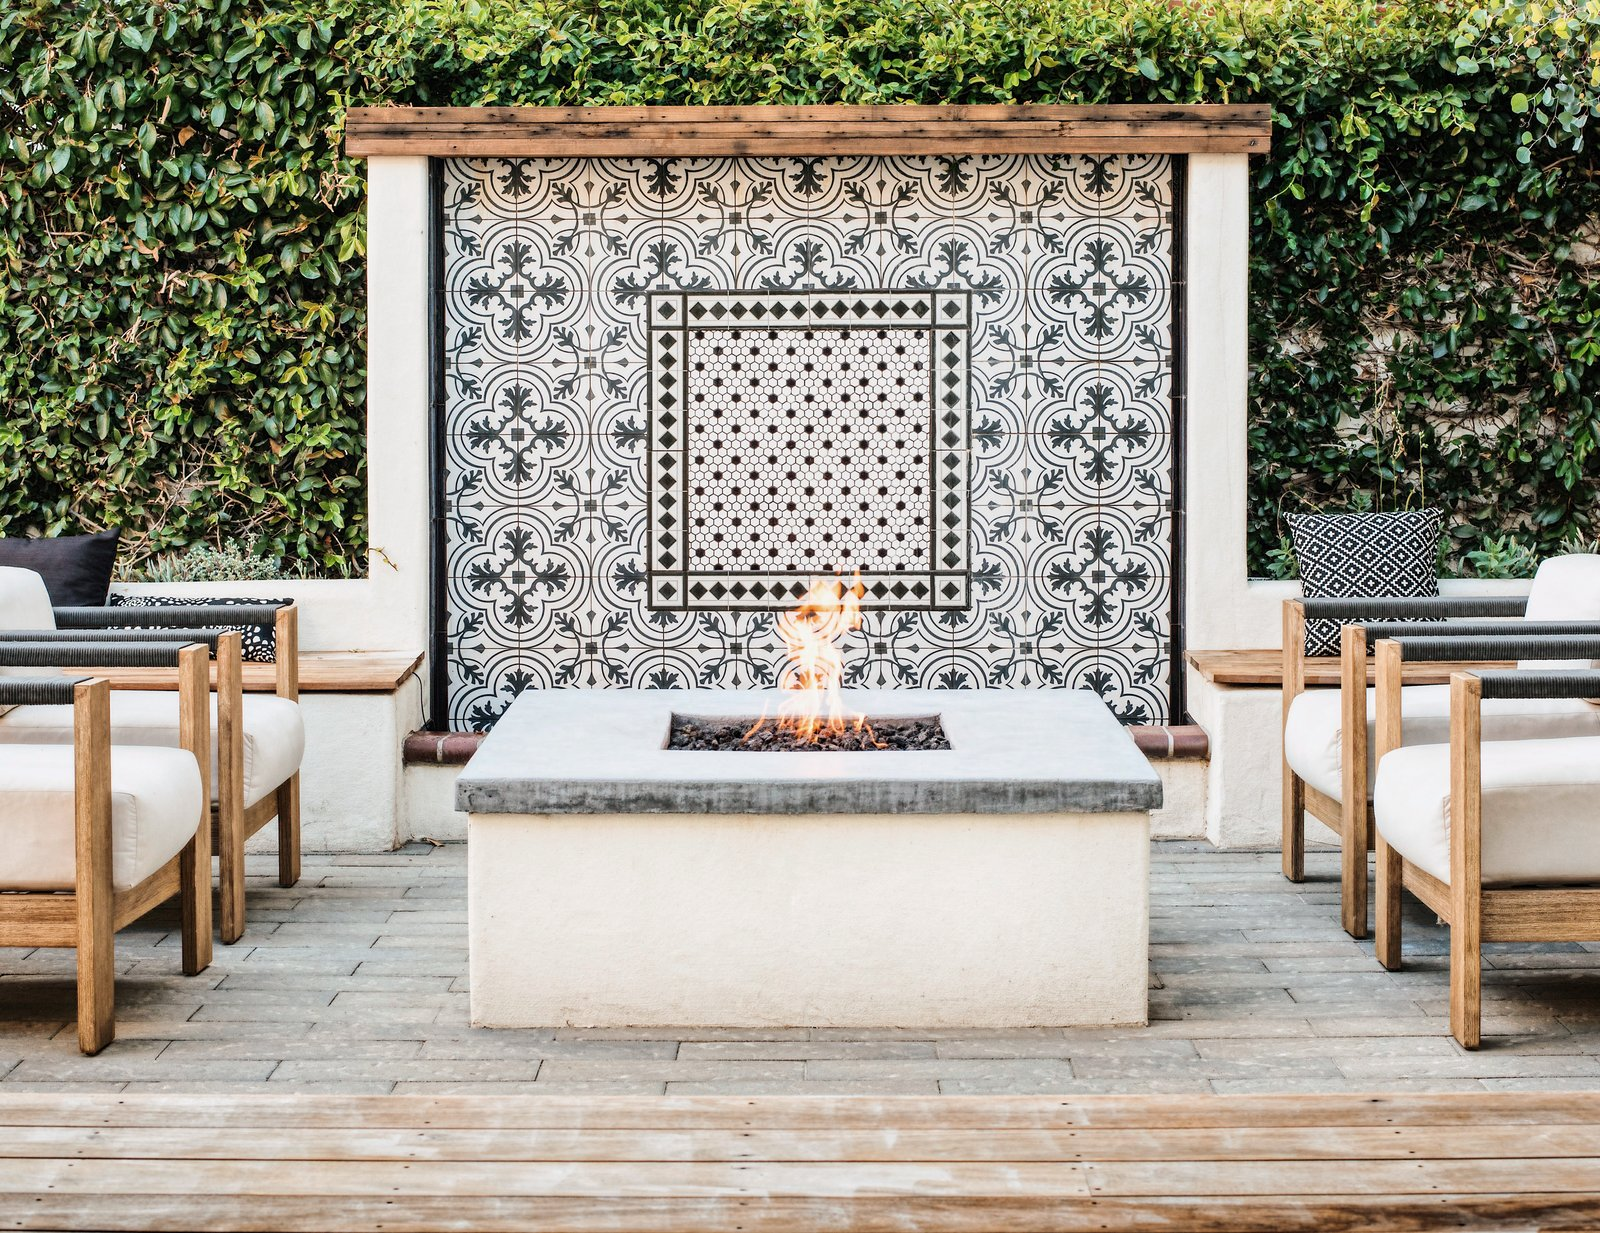 Spanish Revival by Colossus Mfg_Firepit Fountain